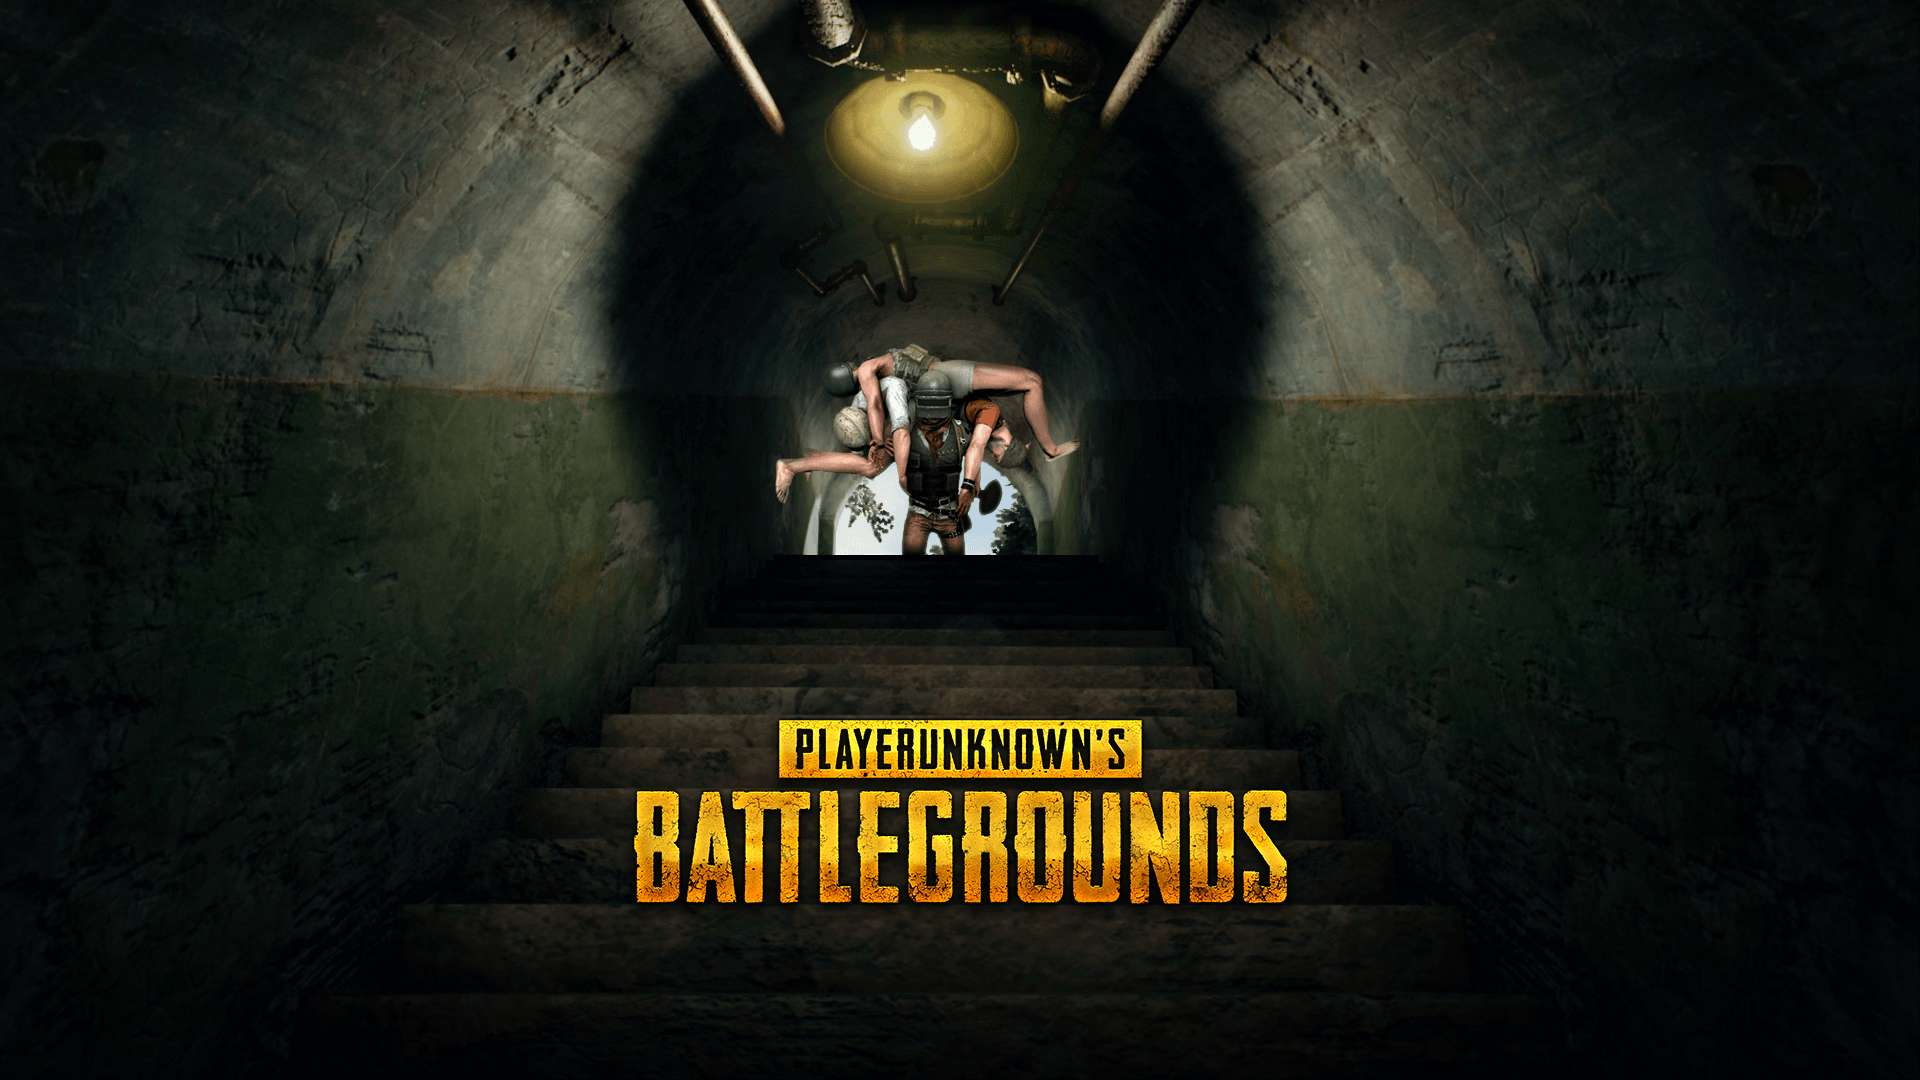 Pubg Chase Wallpaper By Szalkai S: Free HD Wallpapers And 4K